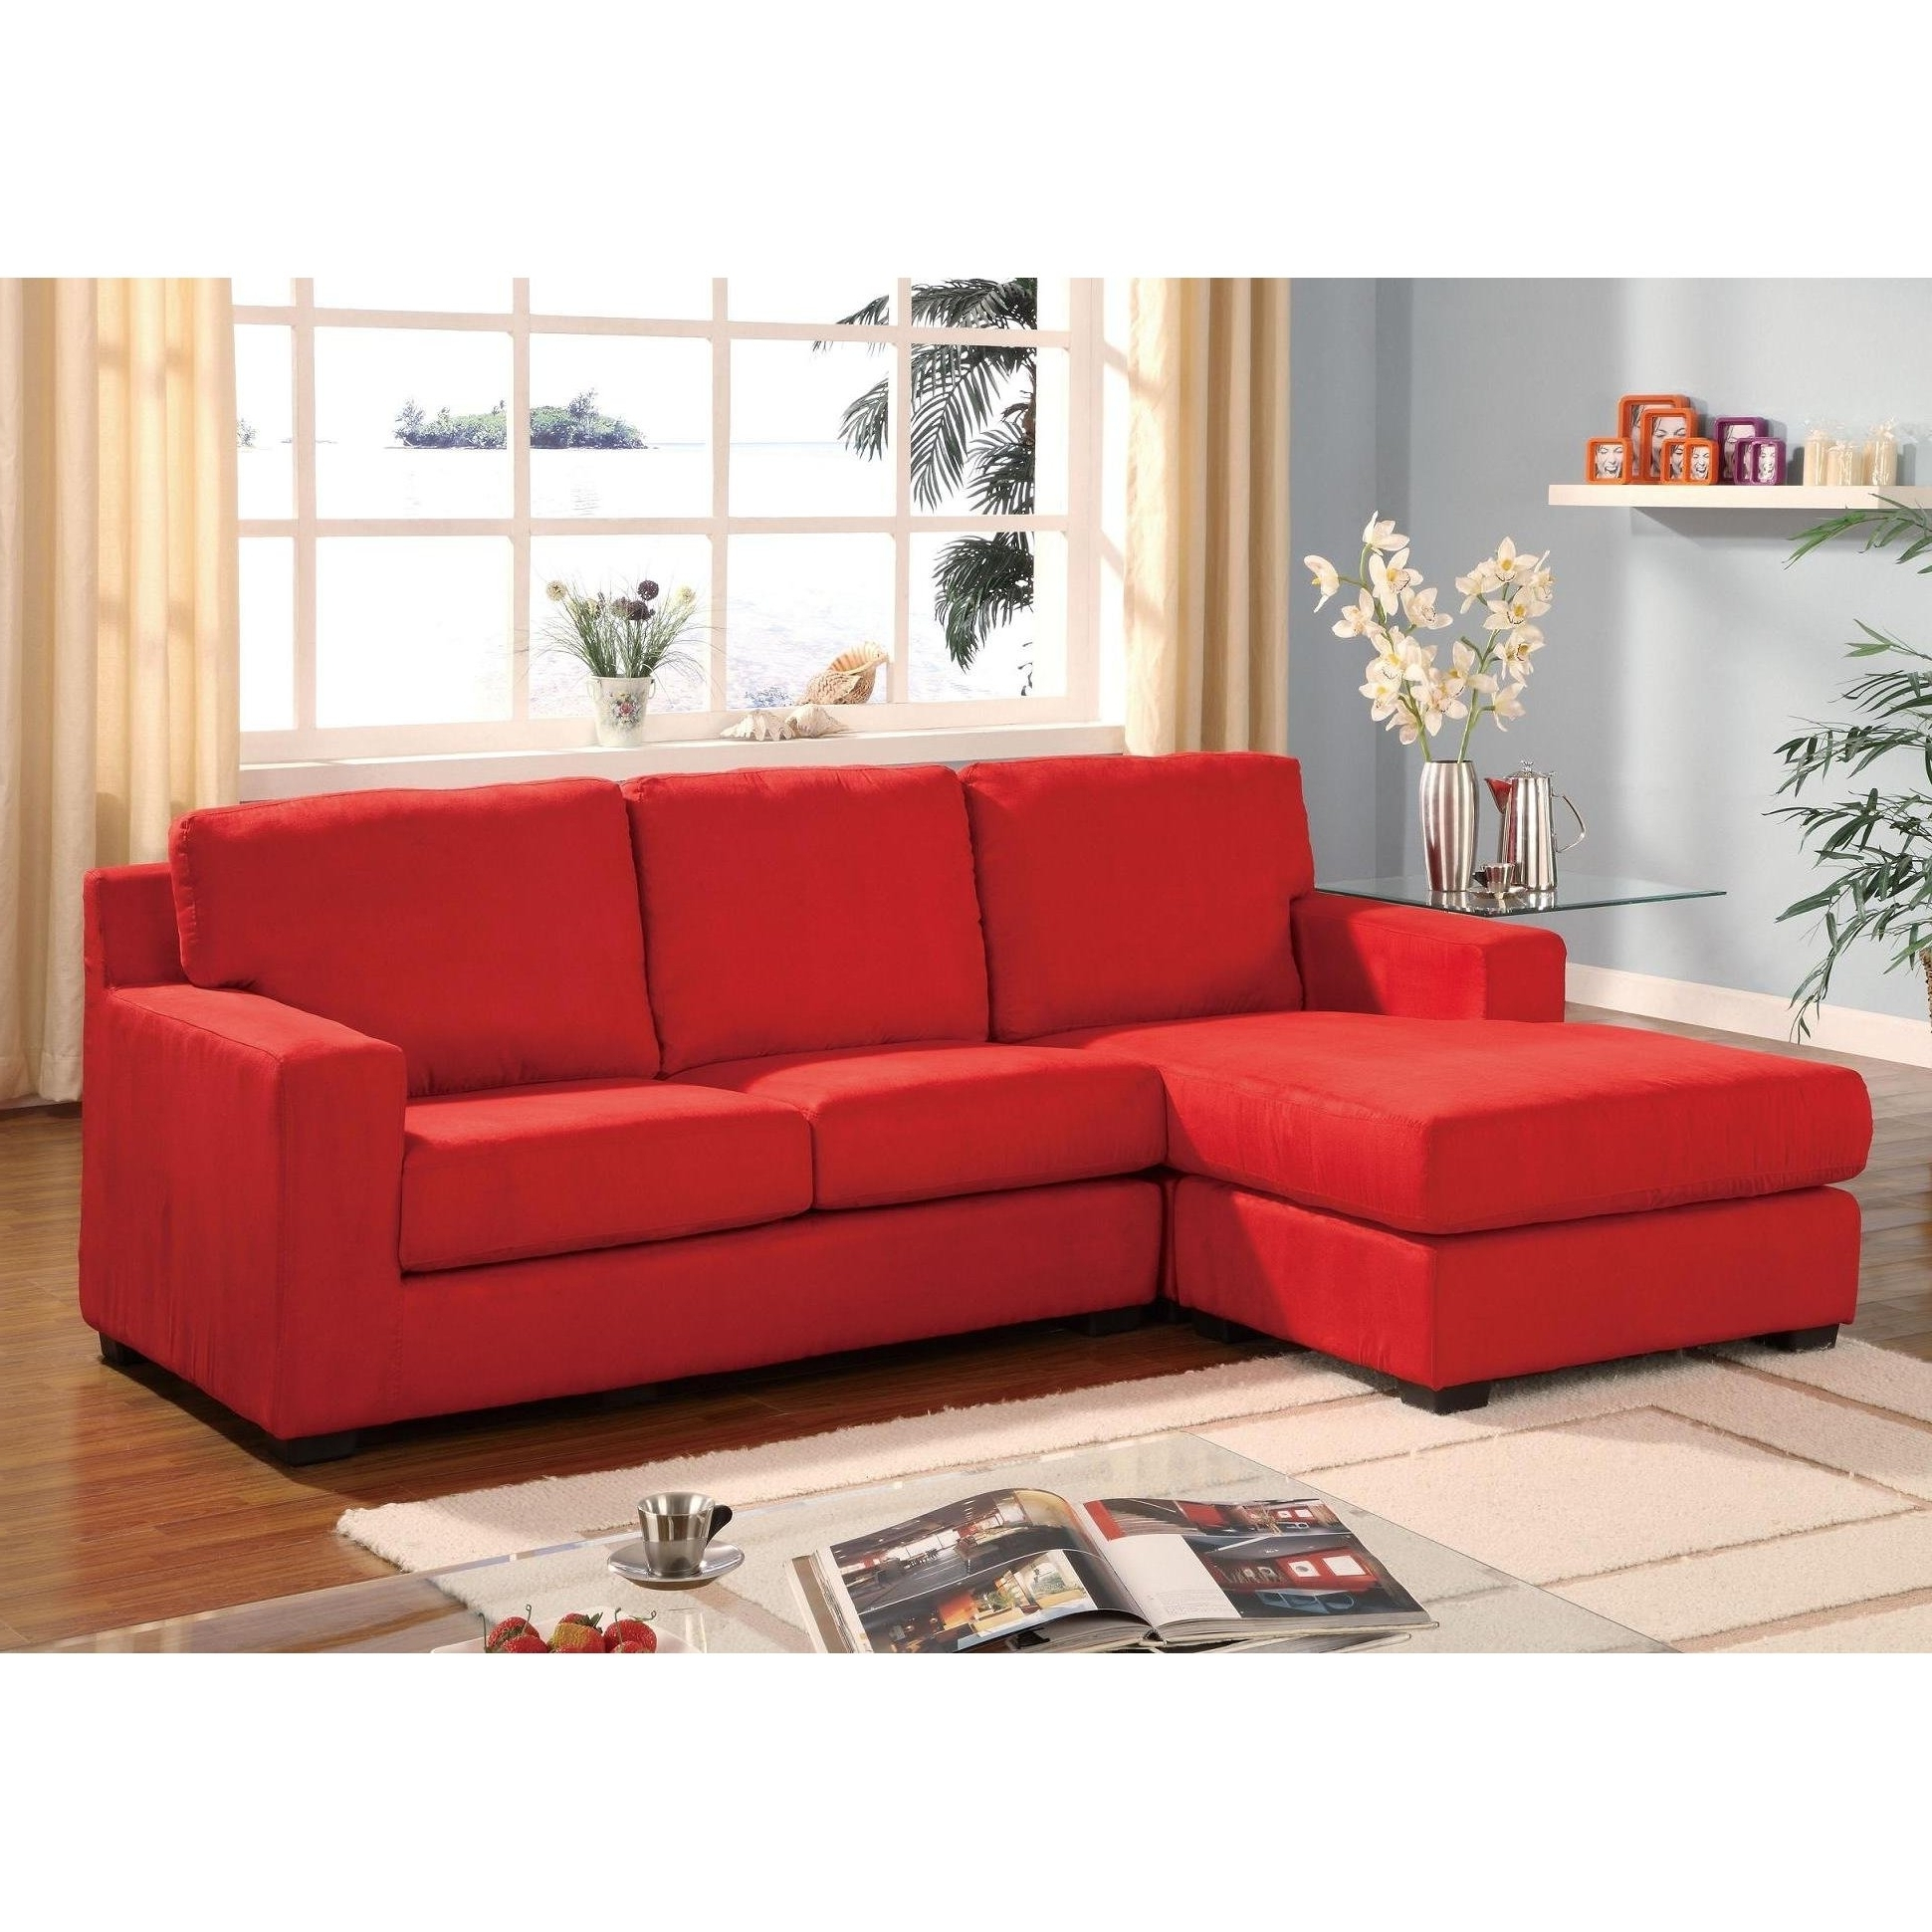 Reclining Sectional Sofas For Small (View 12 of 20)